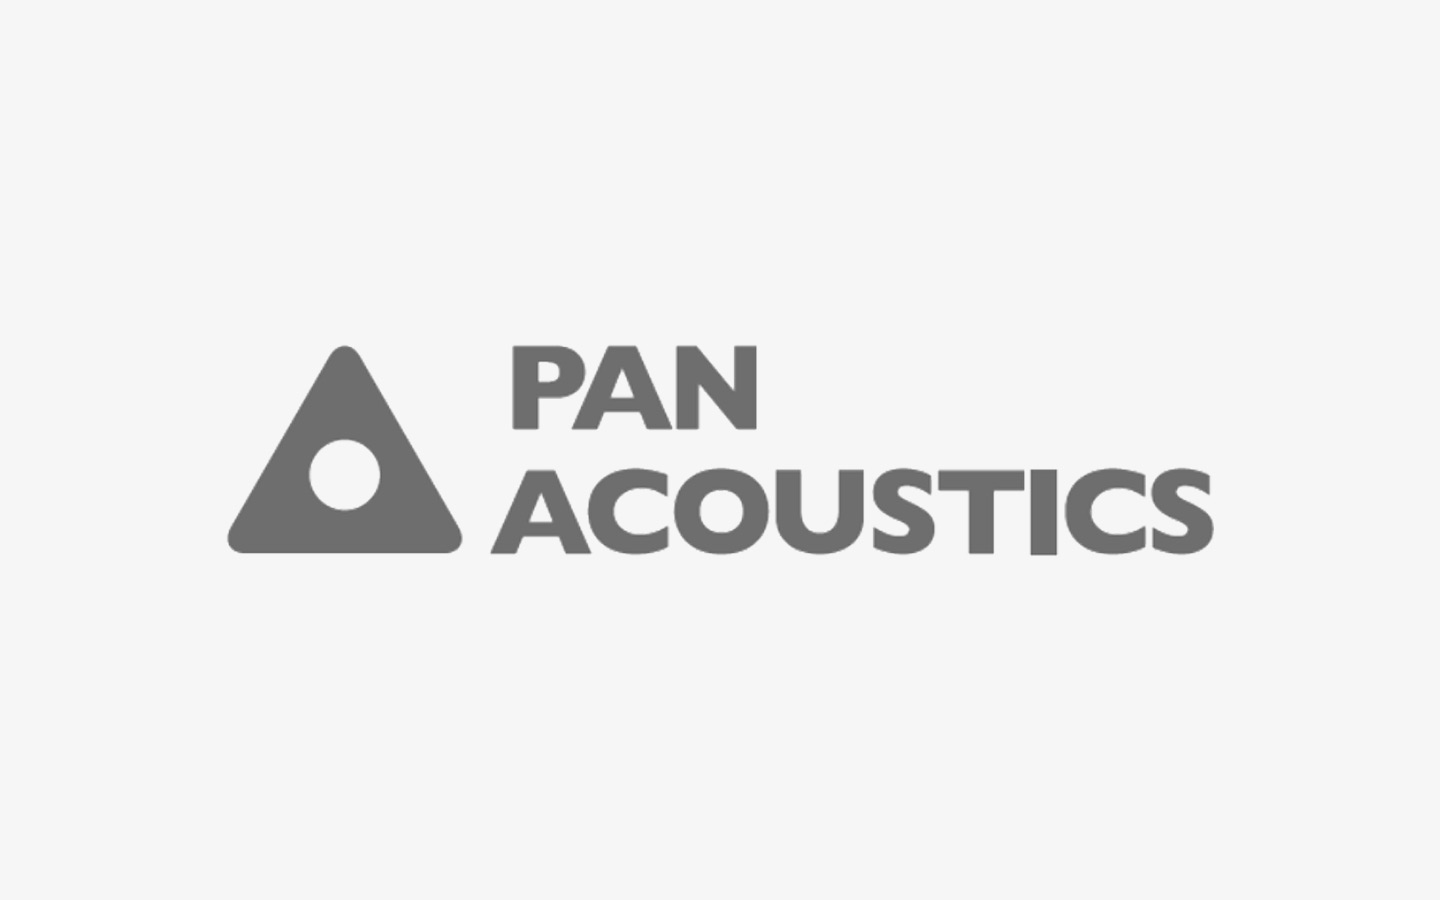 expert-kaelin-partner-pan-acoustics.jpg